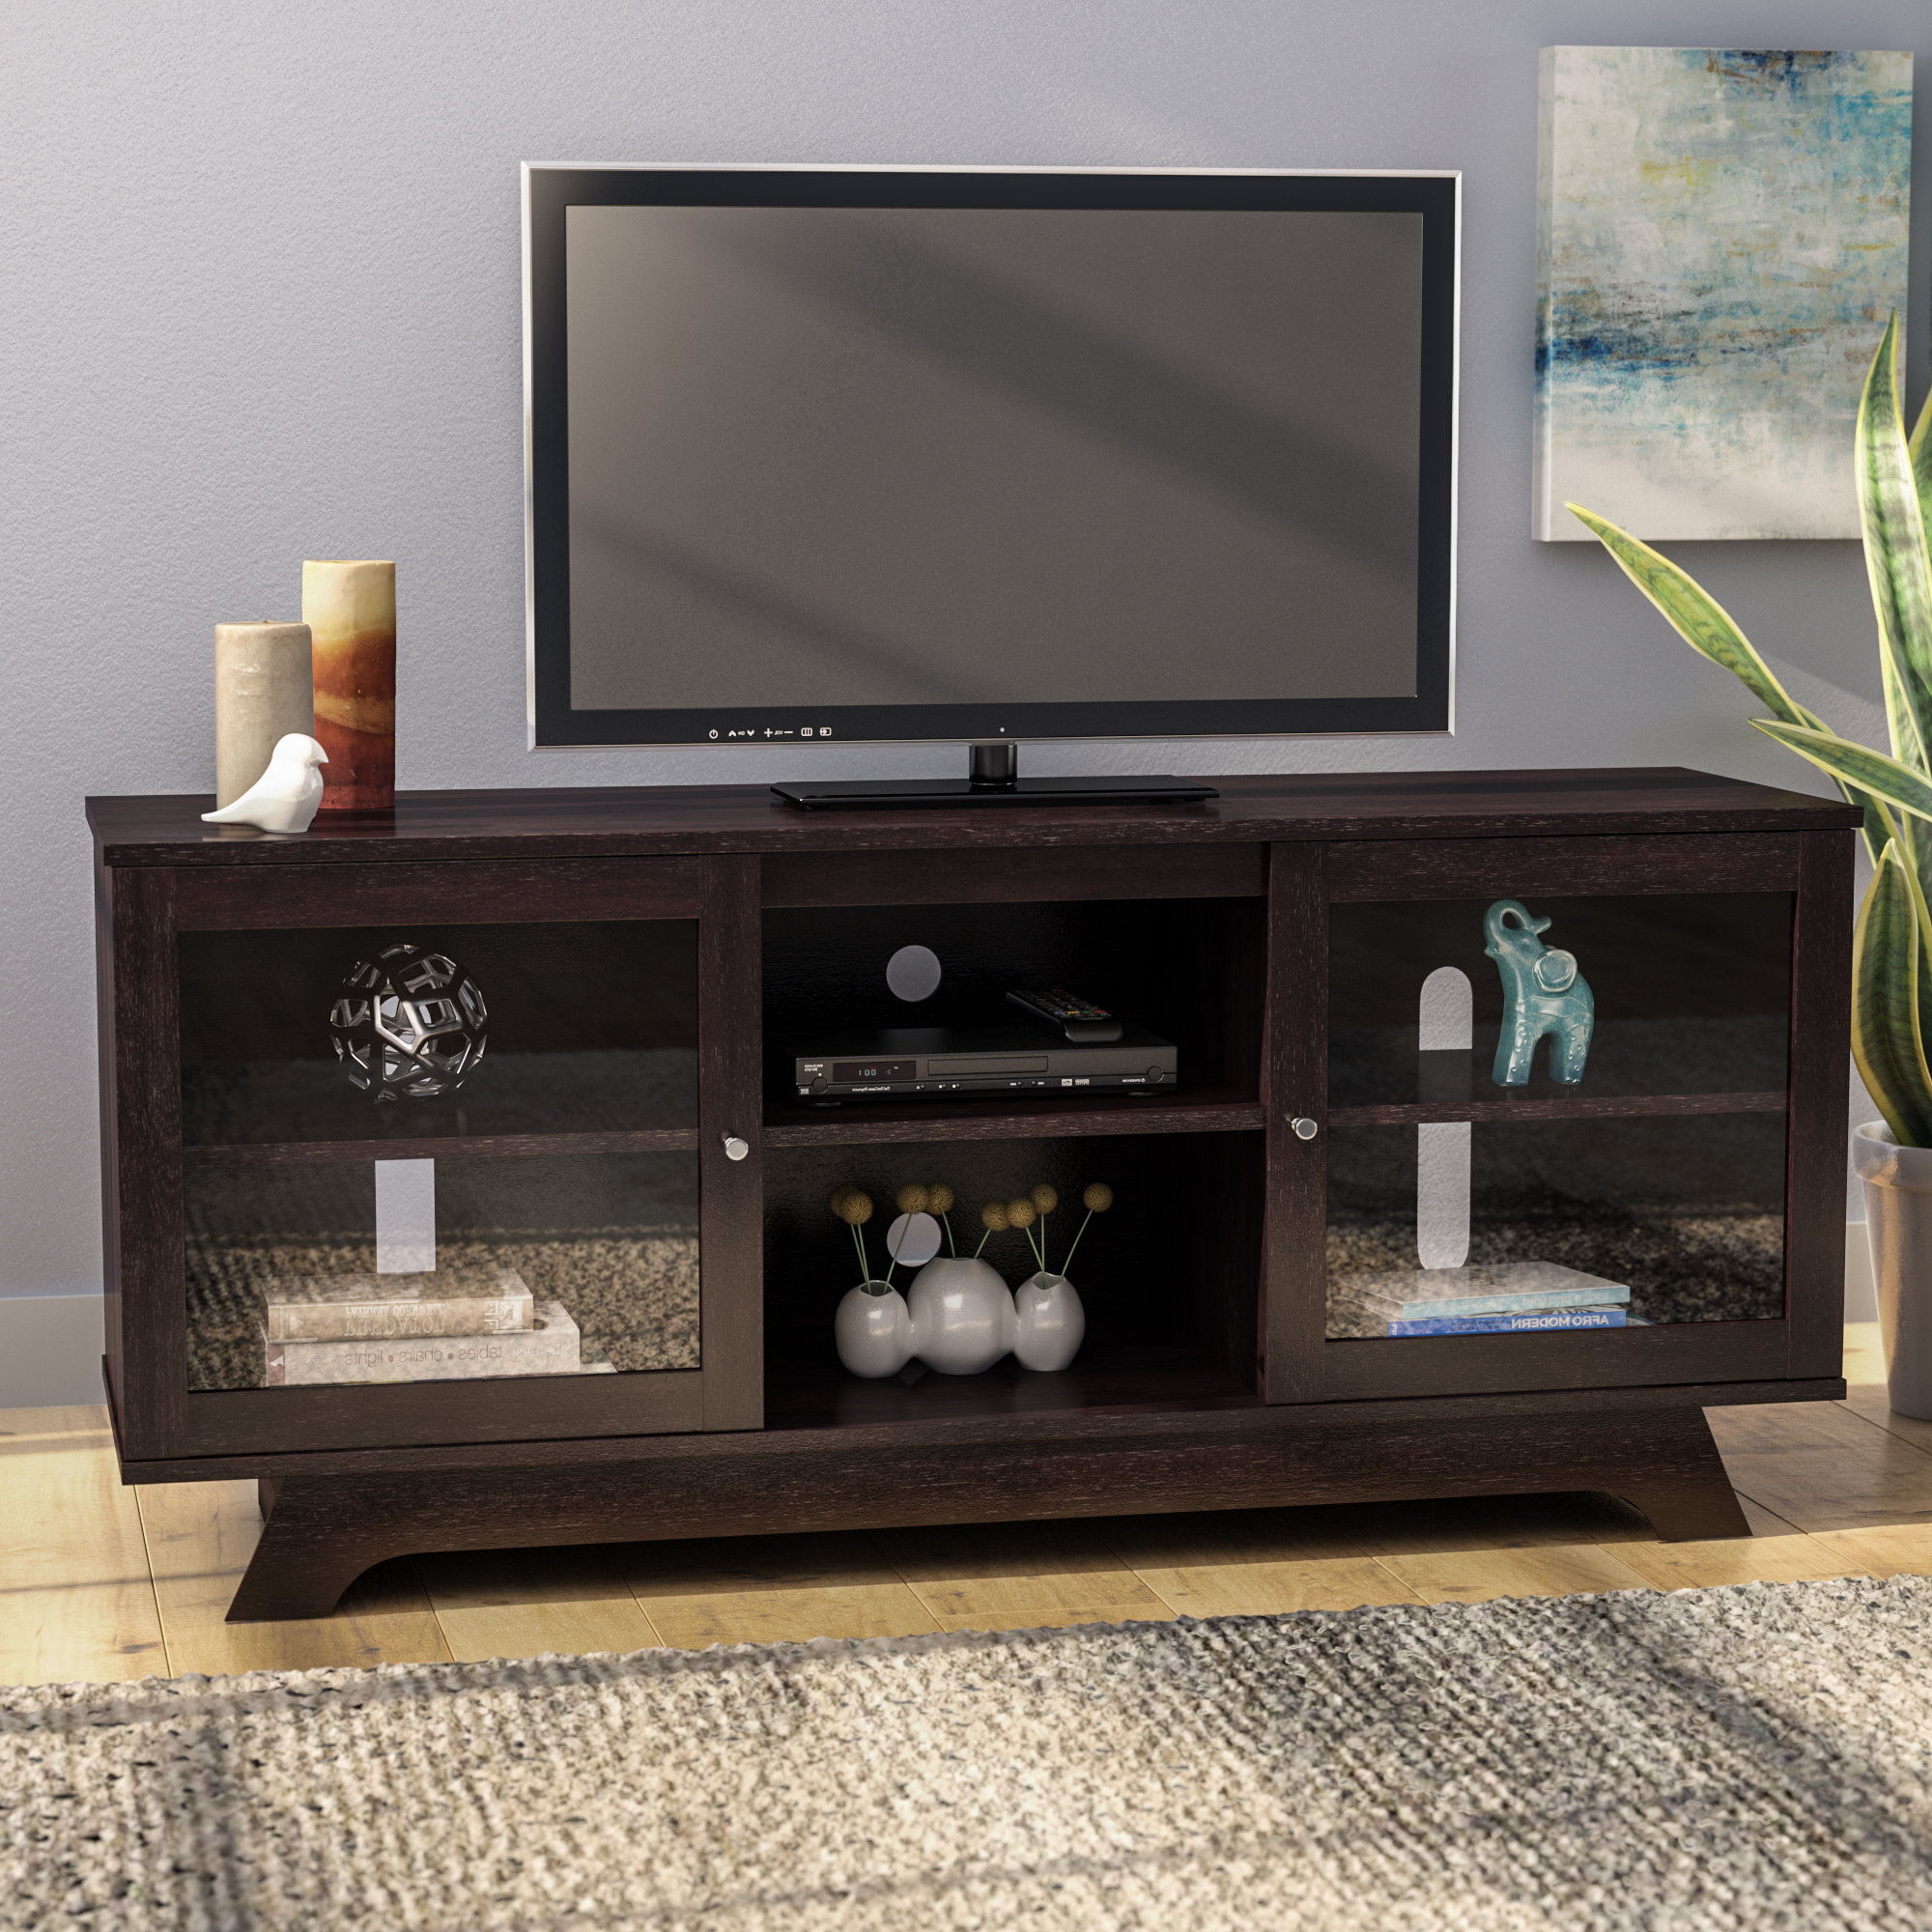 72 Inch Tv Stand (Gallery 8 of 20)